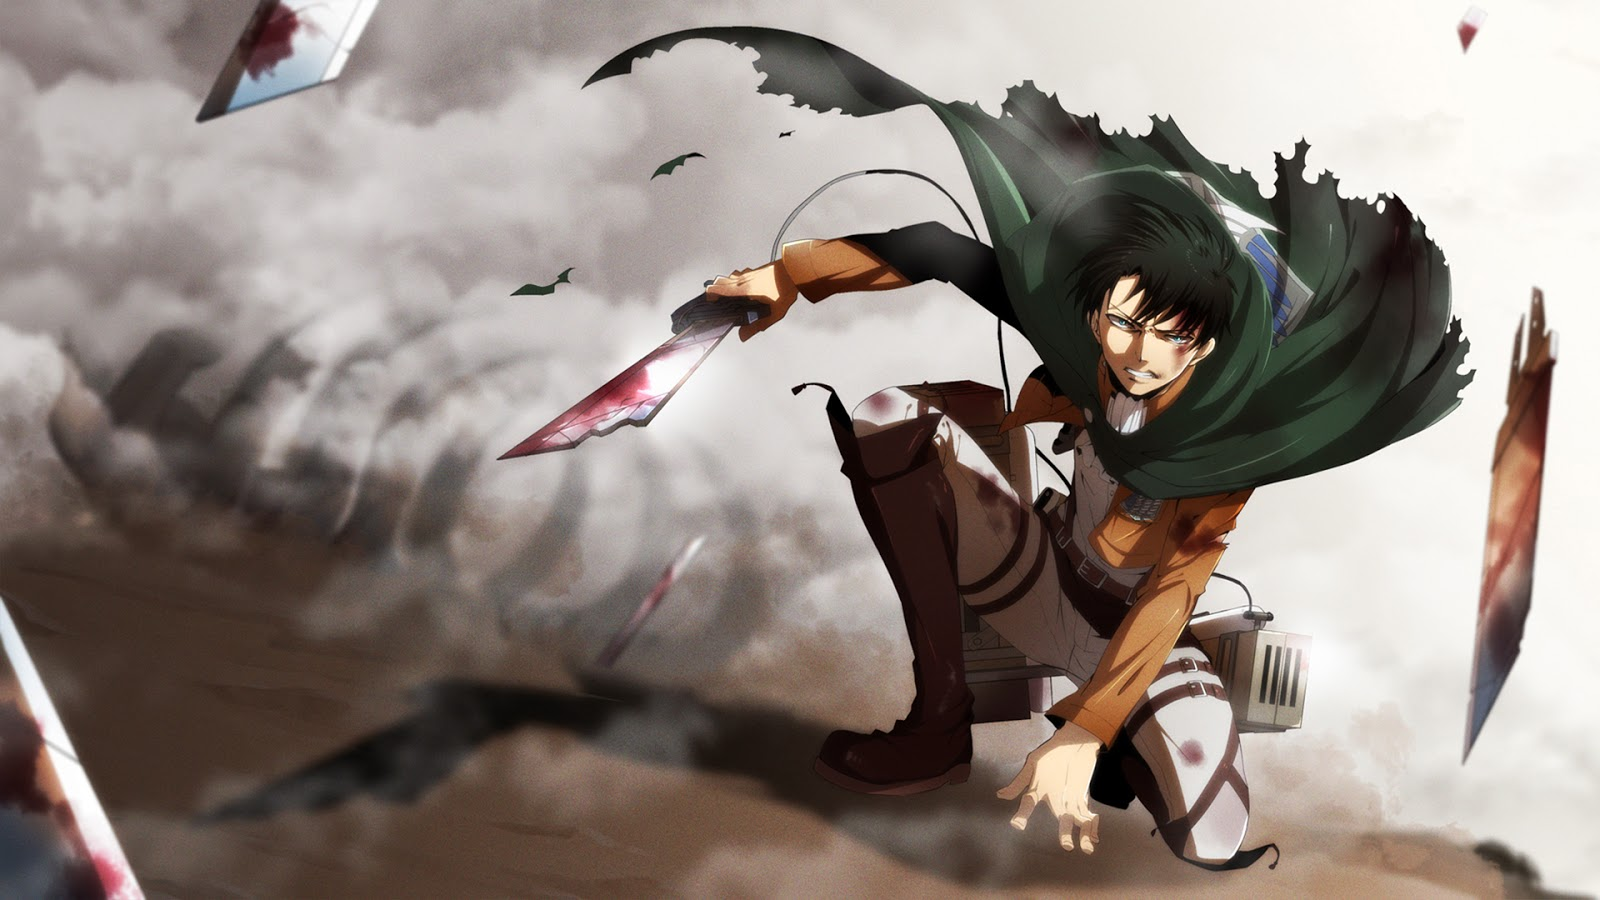 levi attack on titan shingeki no kyojin anime hd wallpaper 1600x900